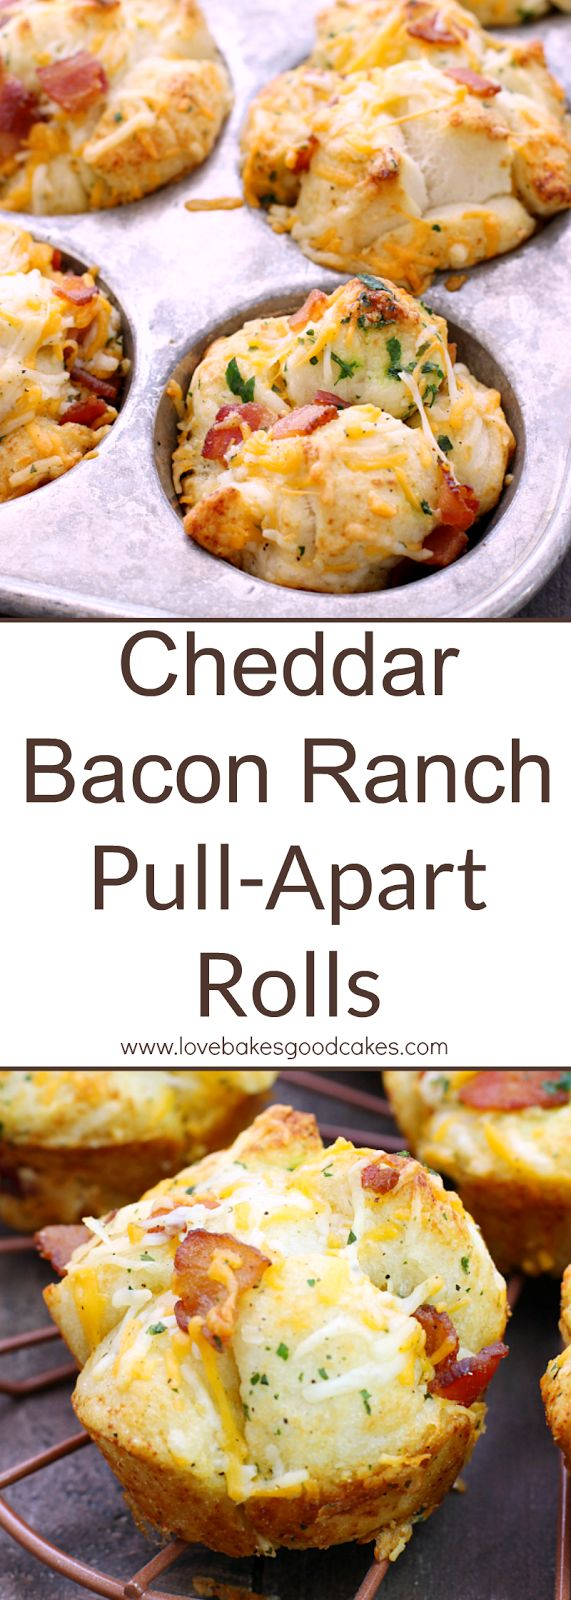 cheddar-bacon-ranch-pull-apart-rolls-collage-picture